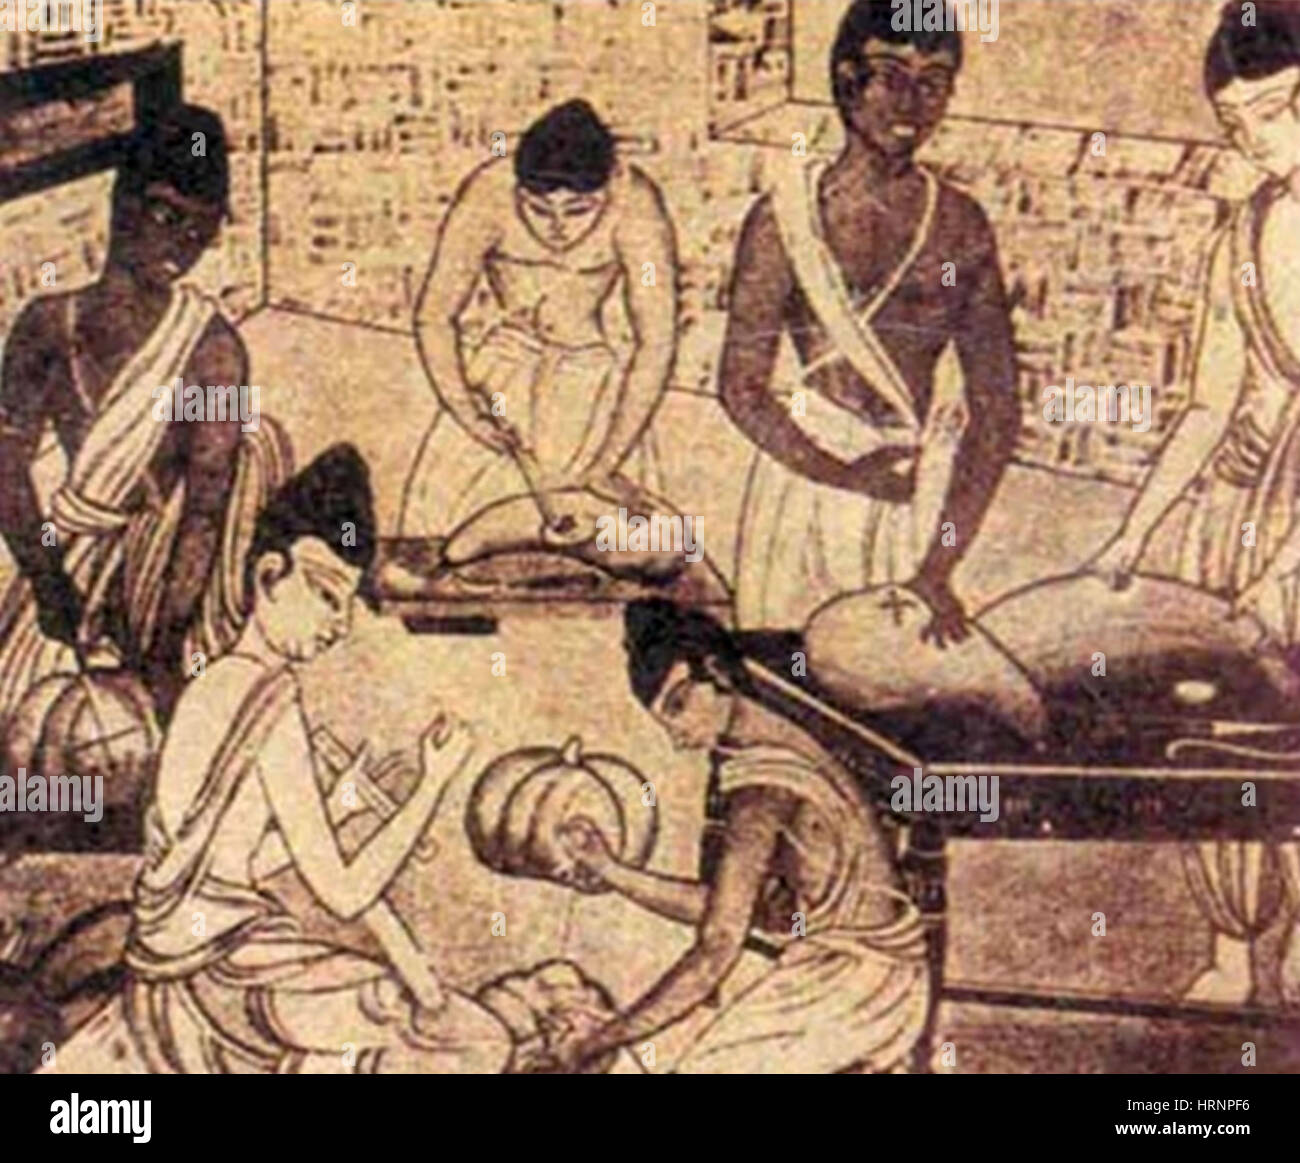 Saushrutas, Practicing Surgery, 800 BC - Stock Image